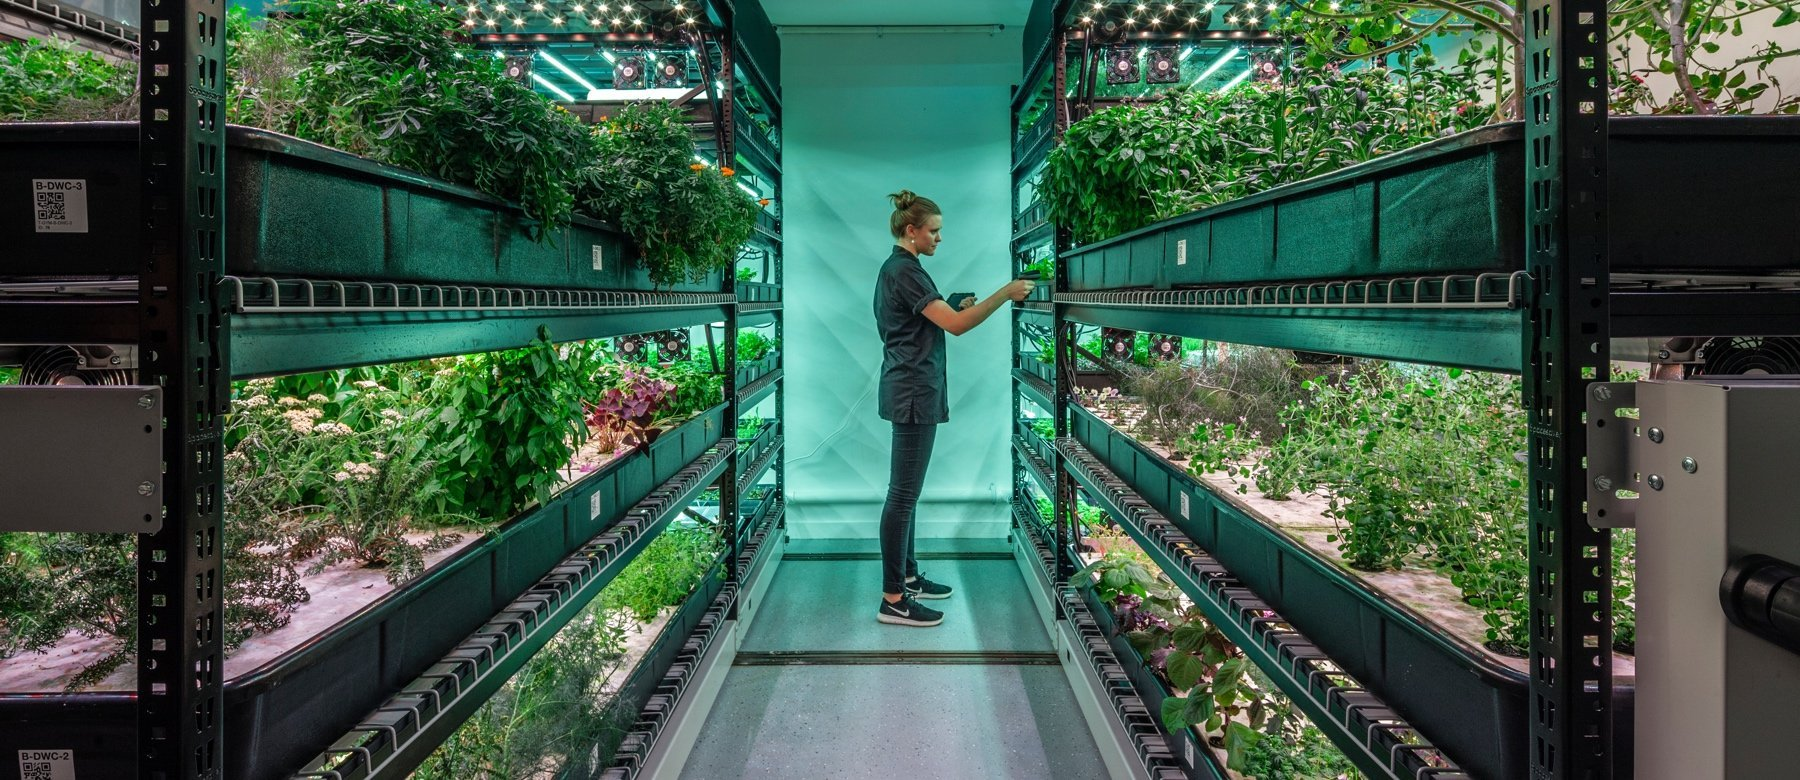 Farm One is the Indoor Farm of the Future